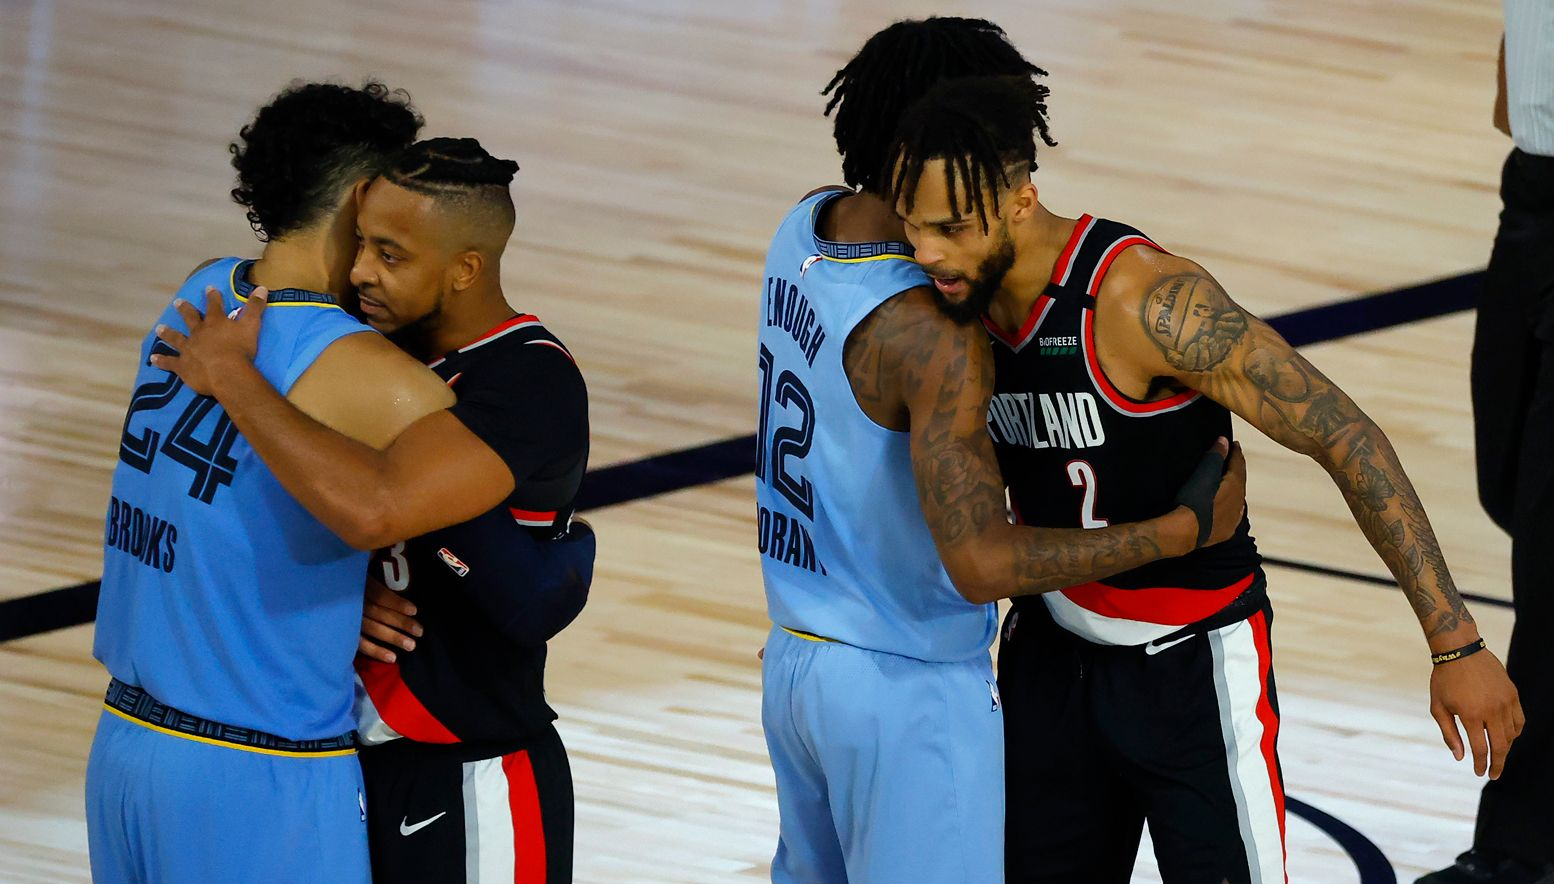 Grizzlies and Blazers hugging